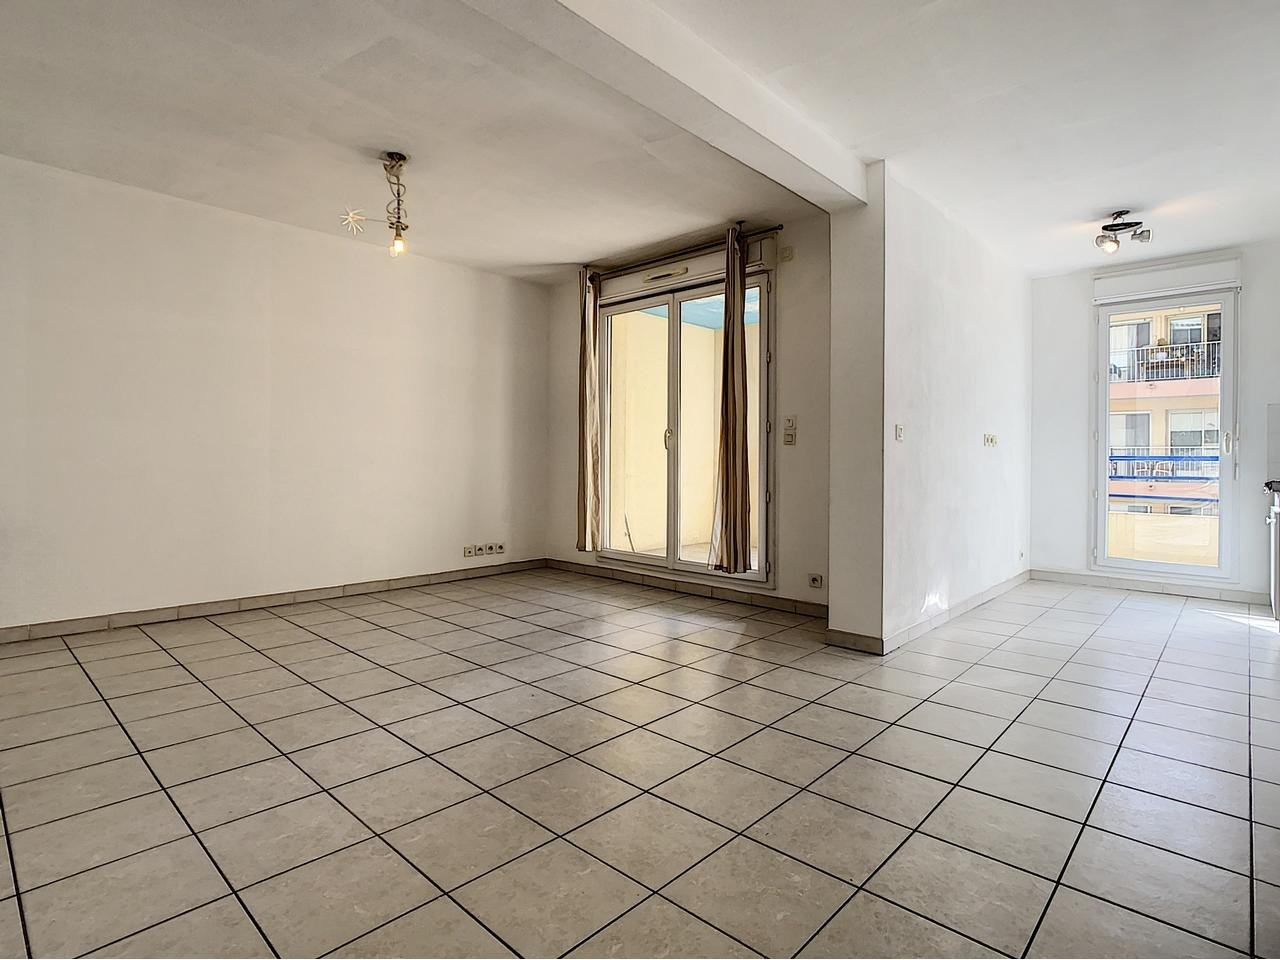 Appartement  2 Rooms 47m2  for sale   231 000 €